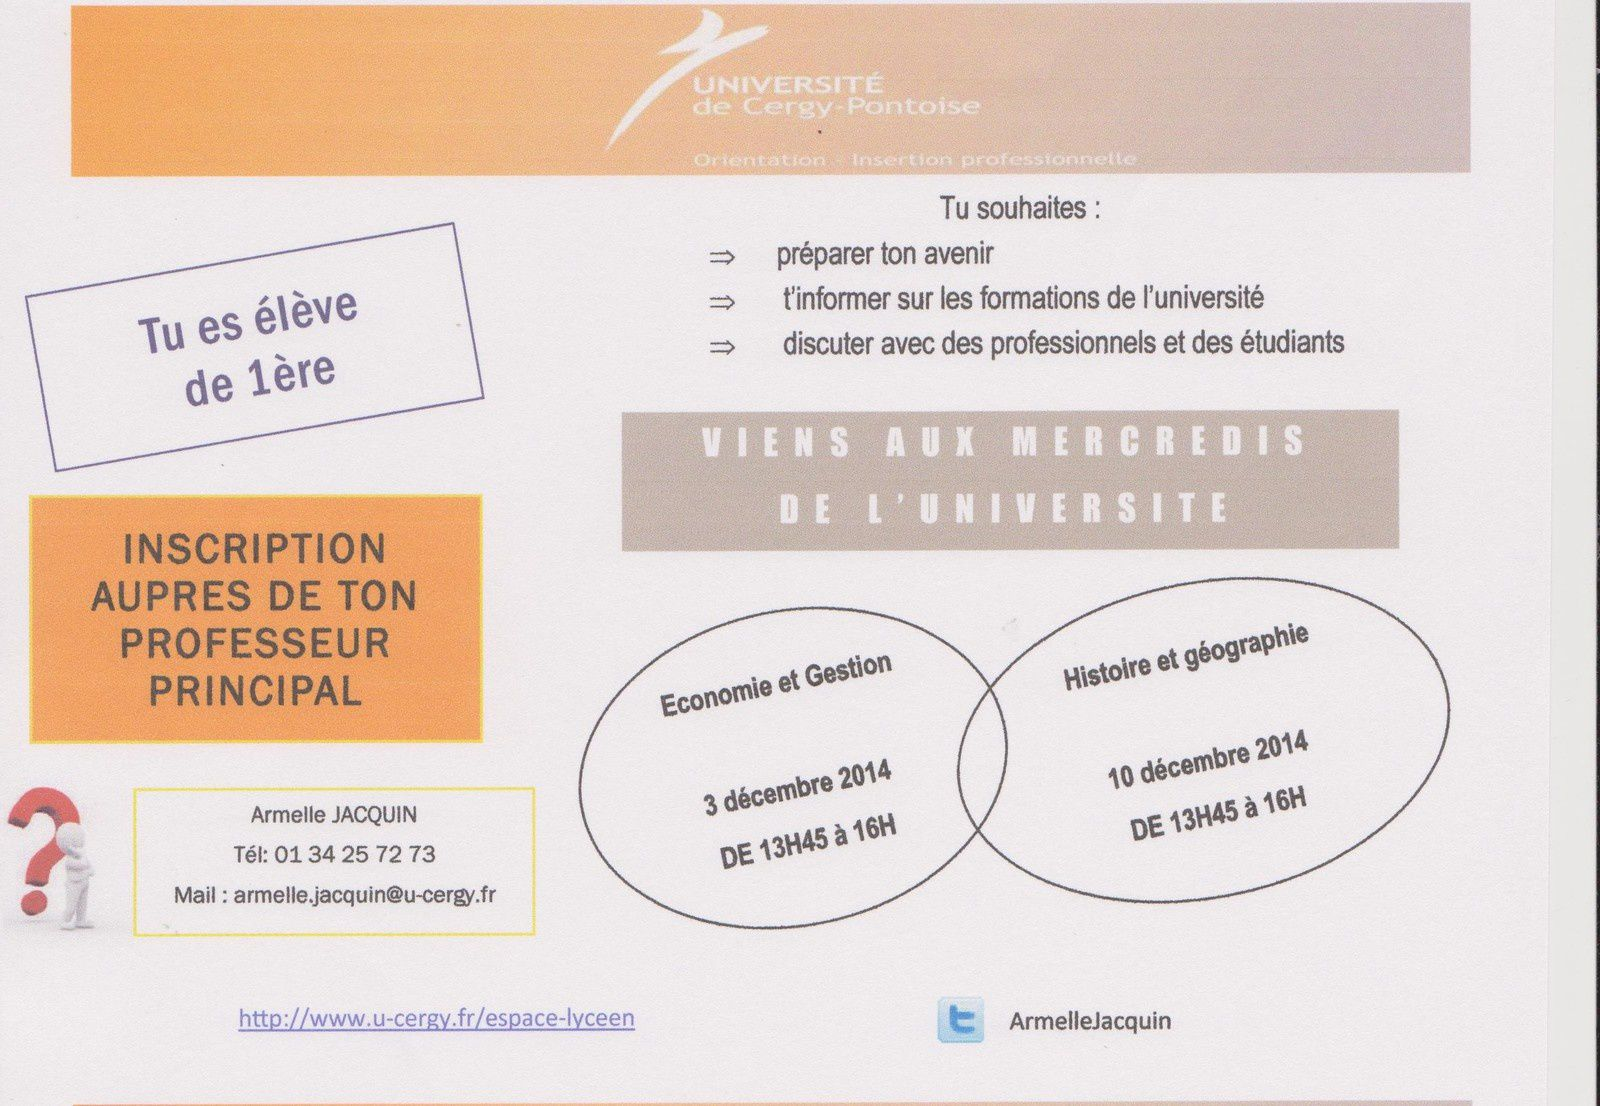 Le Flyer de l'Université de Cergy